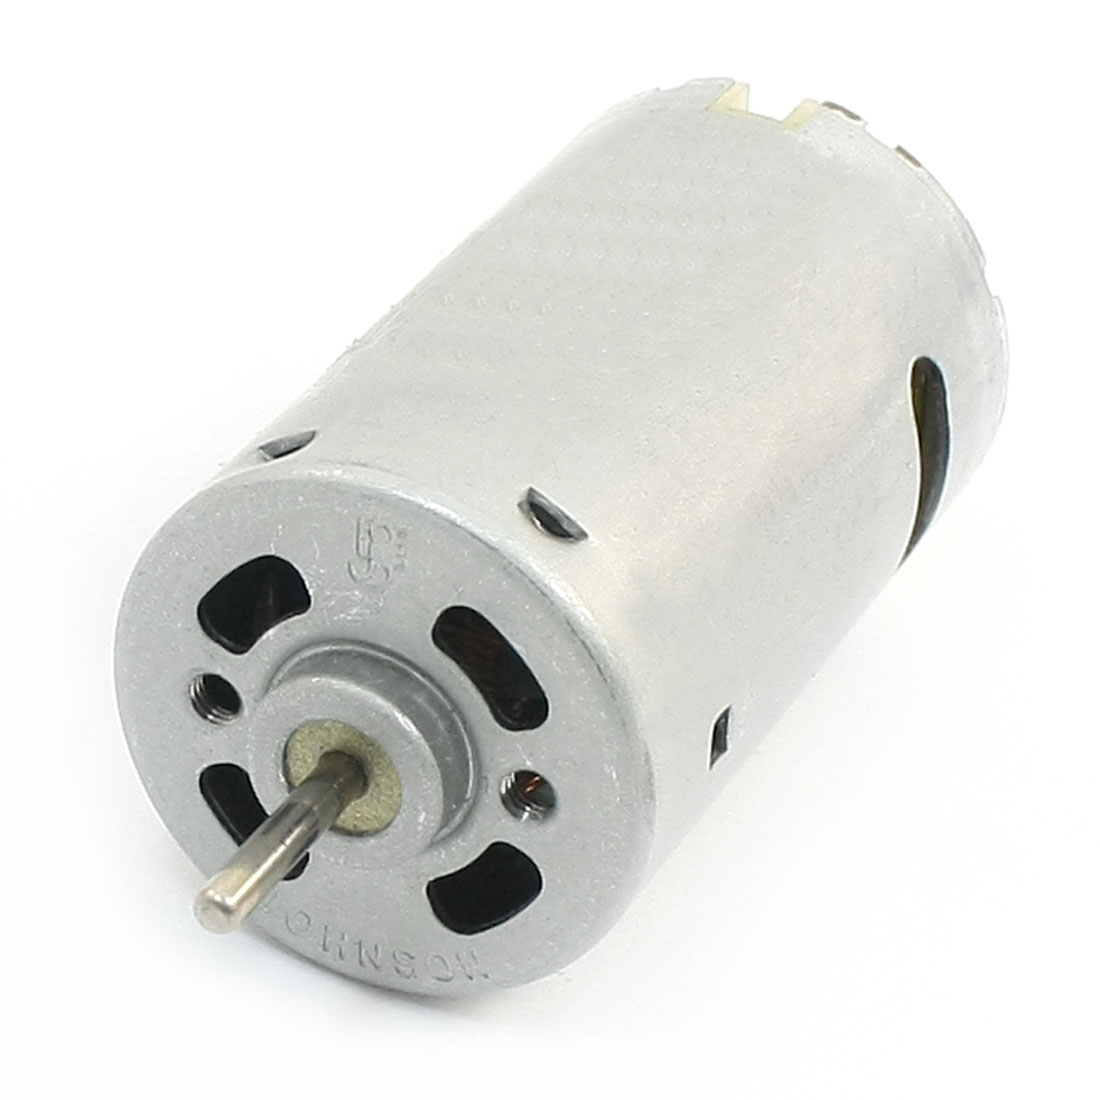 DC24V 16800RPM 68mmx2.1mm Shaft 28mm Body Dia Permanent Magnetic Motor